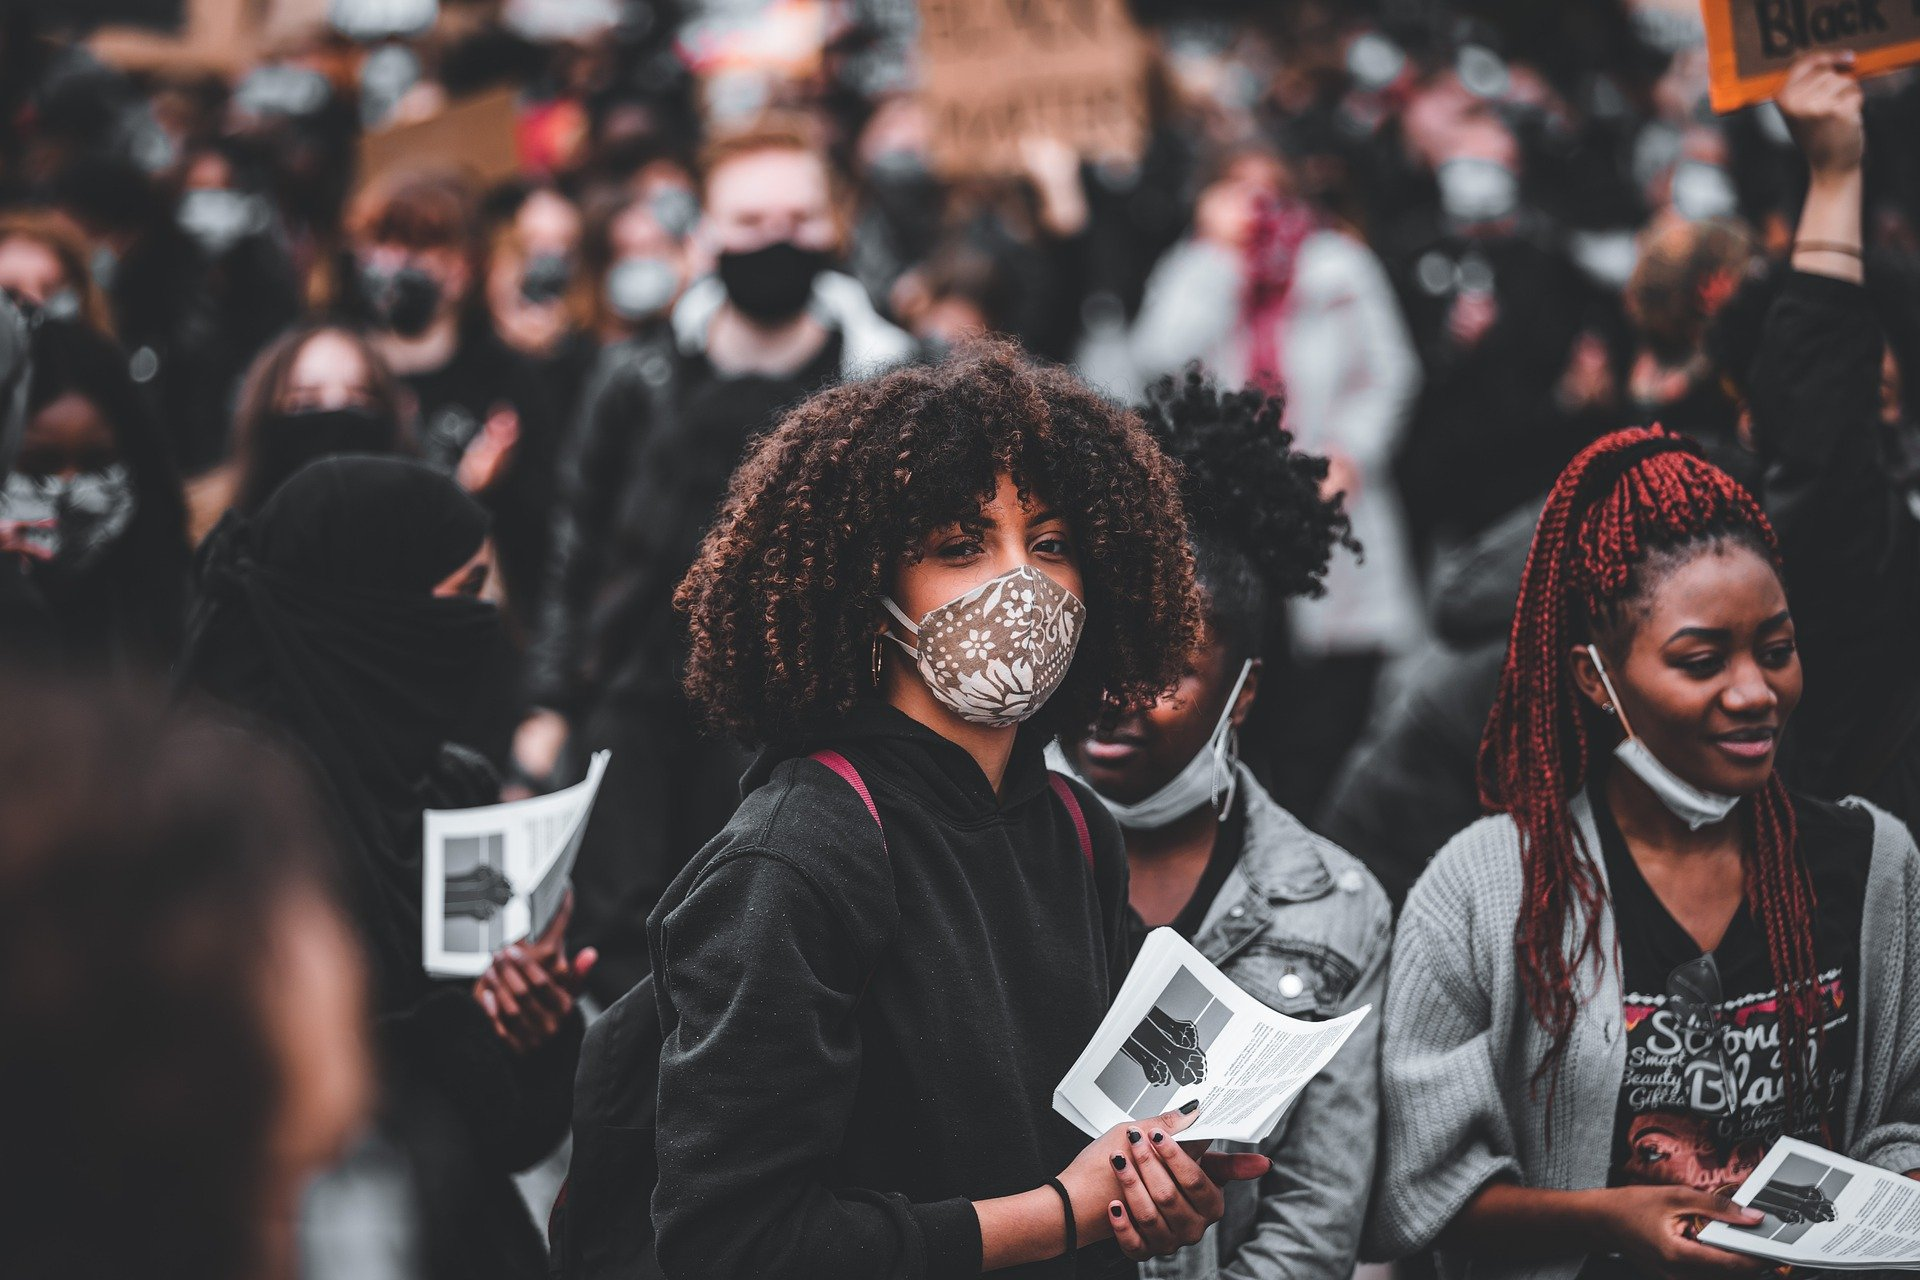 A Black woman wears a face mask in a crowd of people